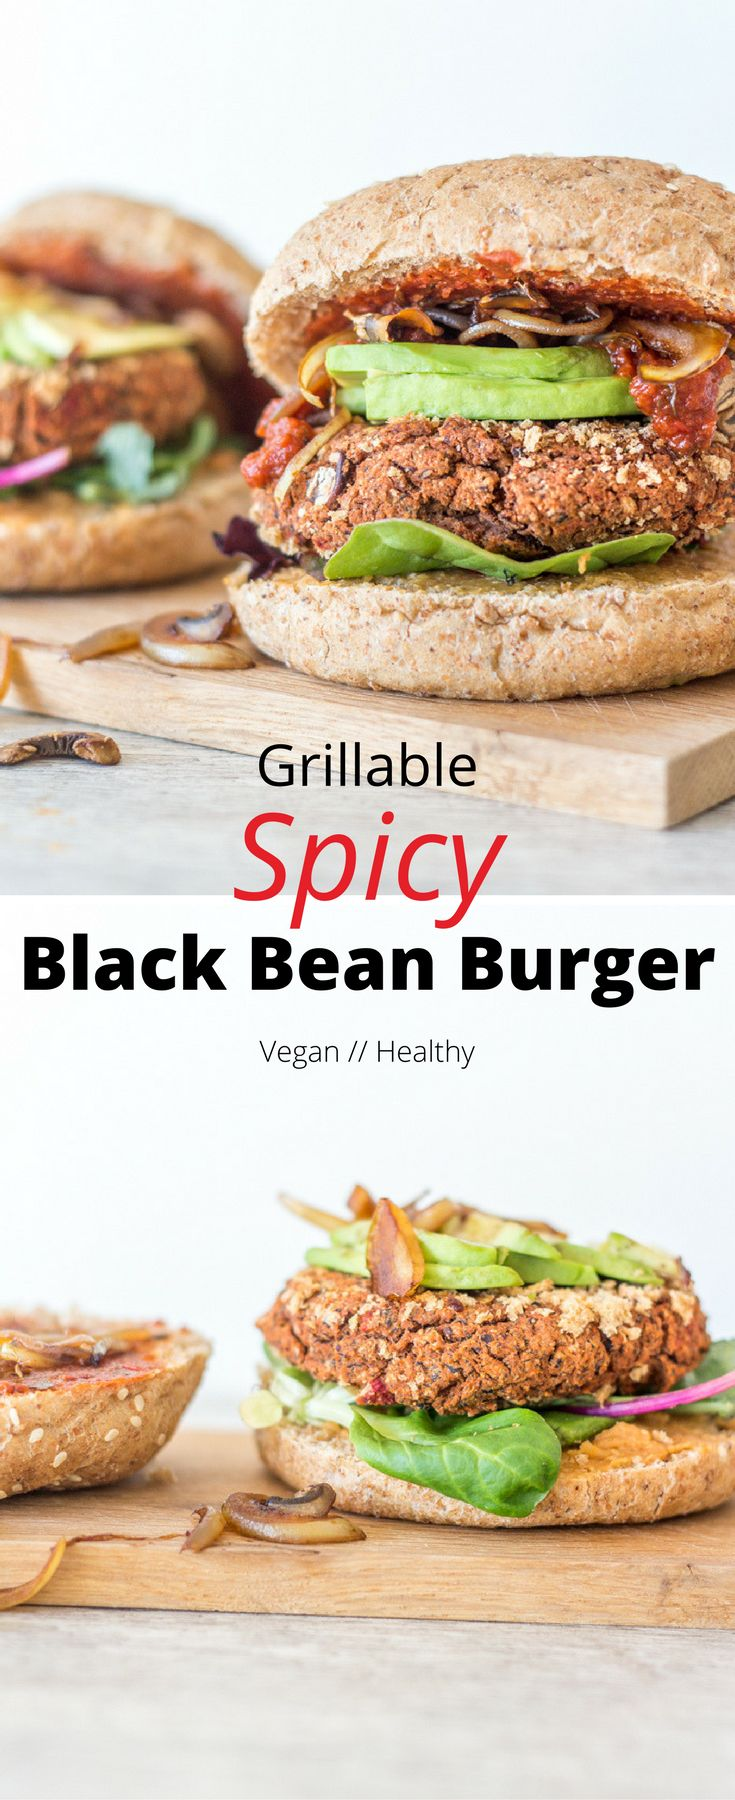 Easy Grillable Spicy Black Bean Burgers loaded with flavour and goodness. These burgers hold up really well, making them perfect for the grill.  Healthy vegan burger | vegan burger patties | vegan burger recipes | grillable vegan burger | vegan dinner recipes | vegan BBQ | healthy dinner | healthy burger